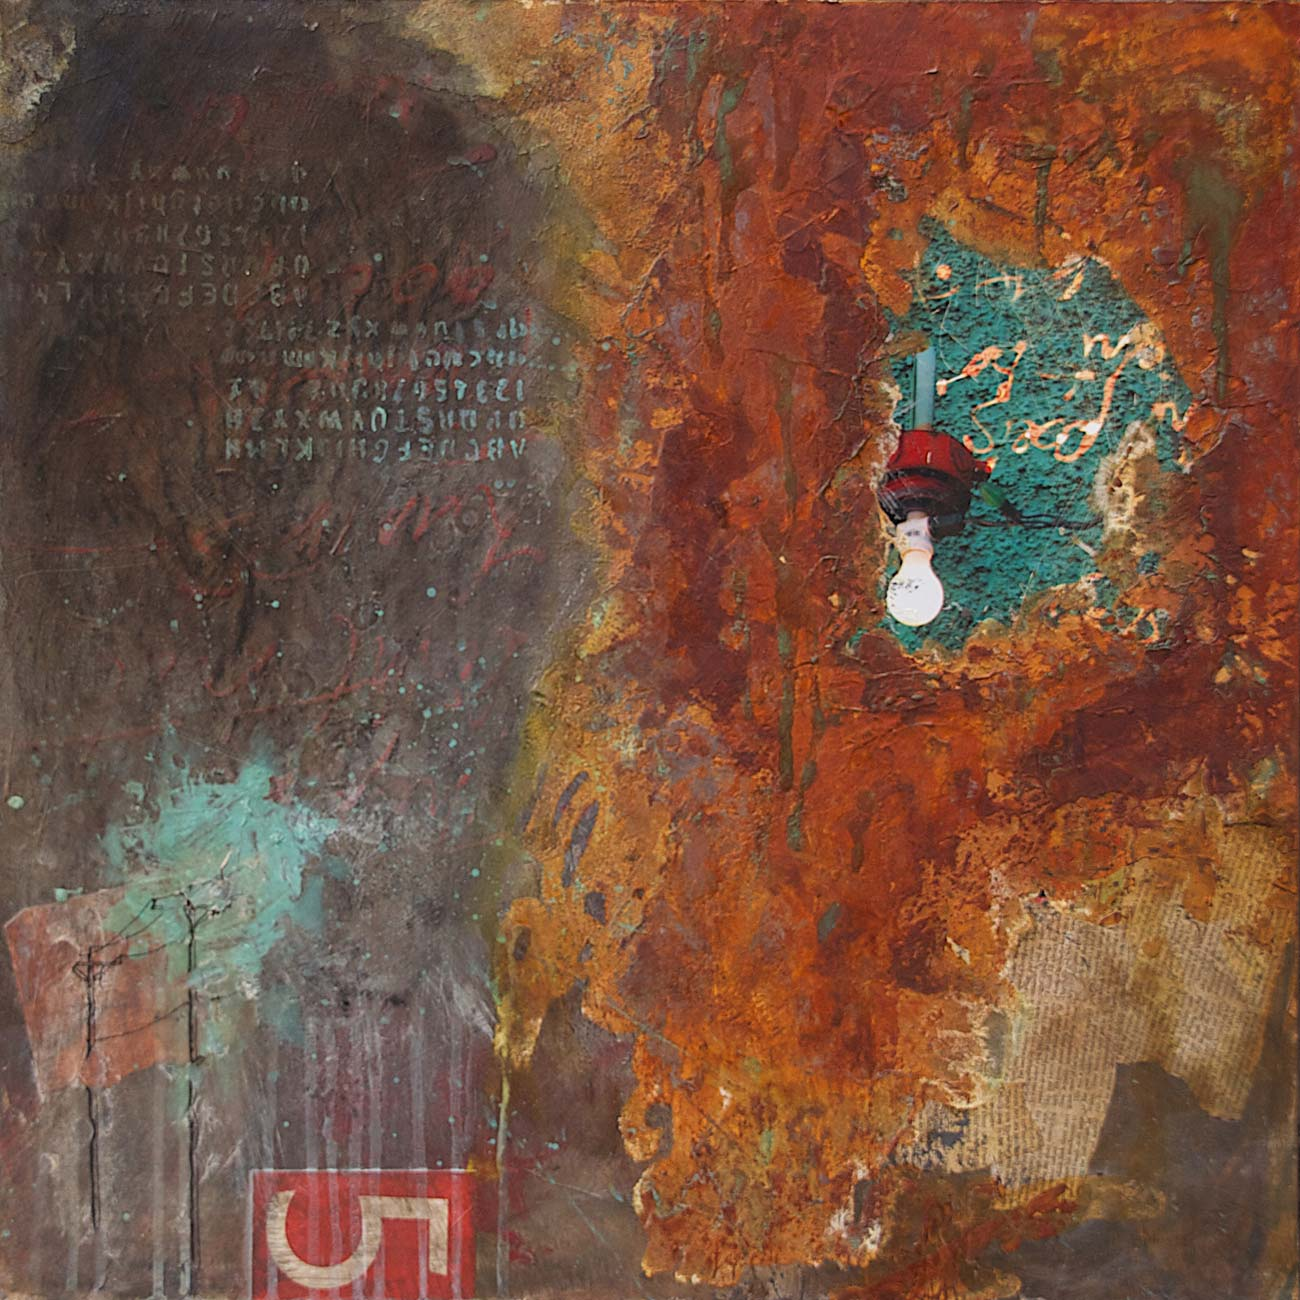 "Lit by Poets, 2012, mixed media on wood, 24"" x 24"", SOLD"